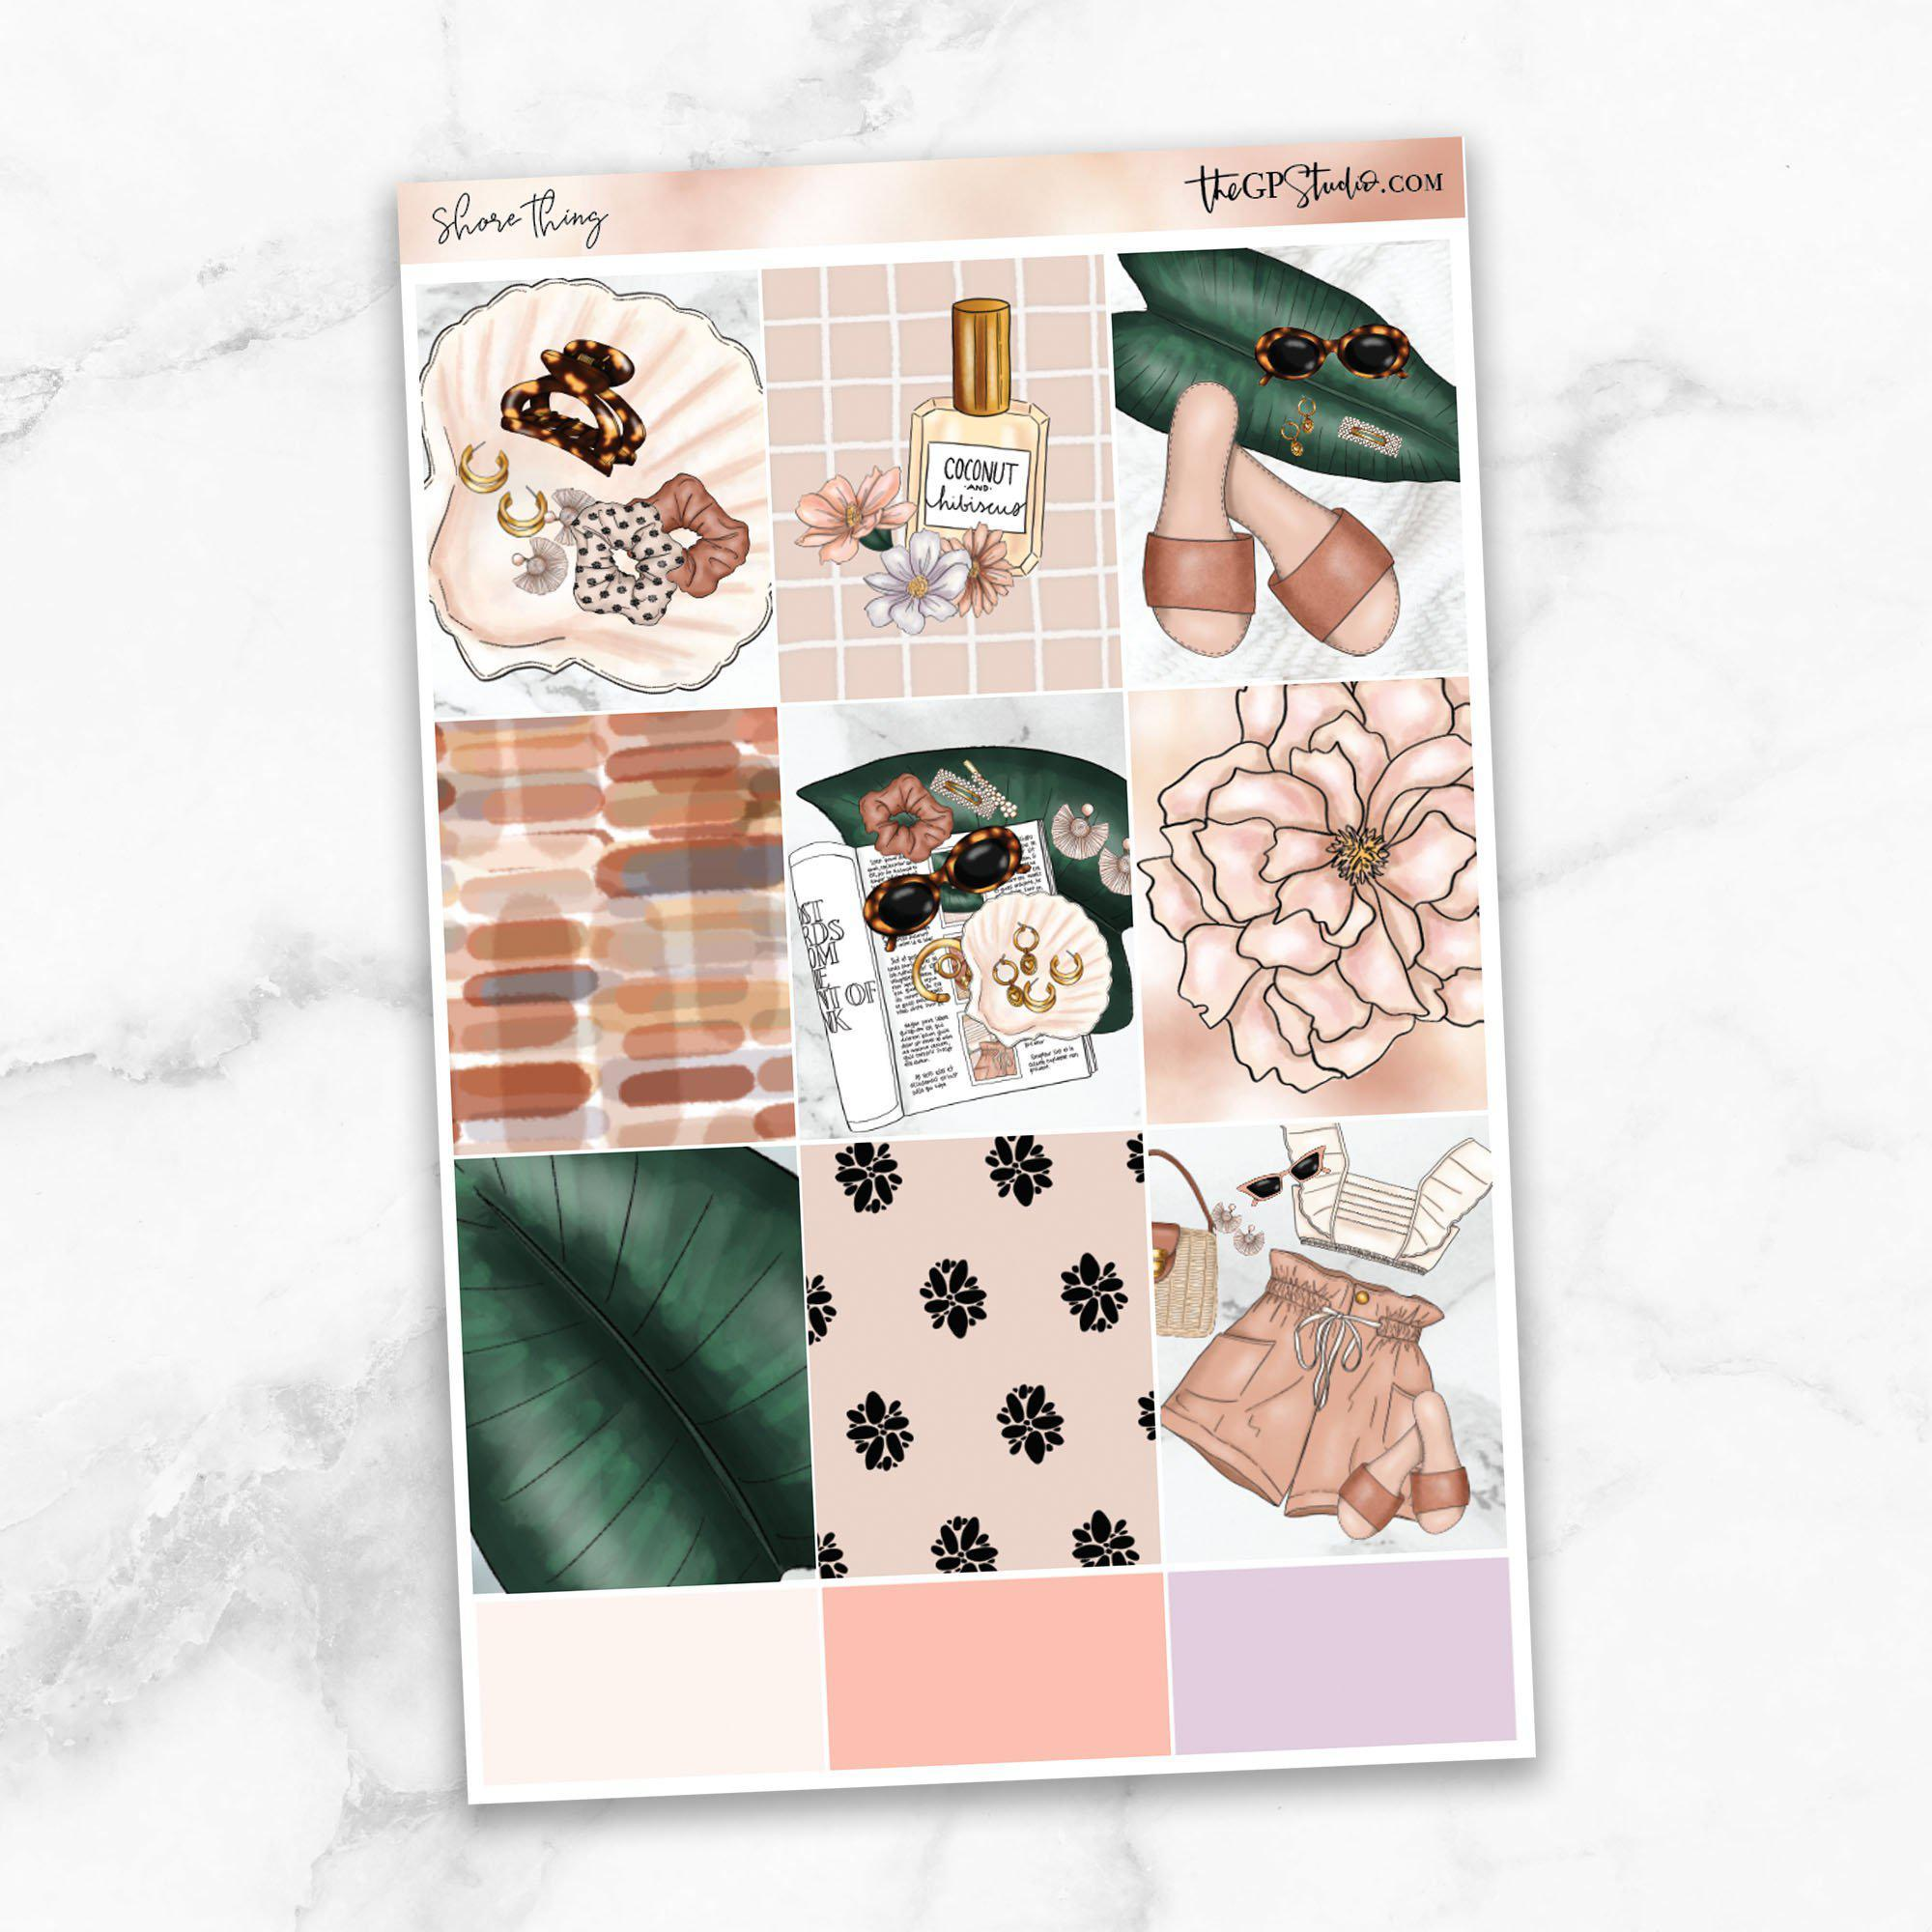 SHORE THING Full Boxes Planner Stickers-The GP Studio